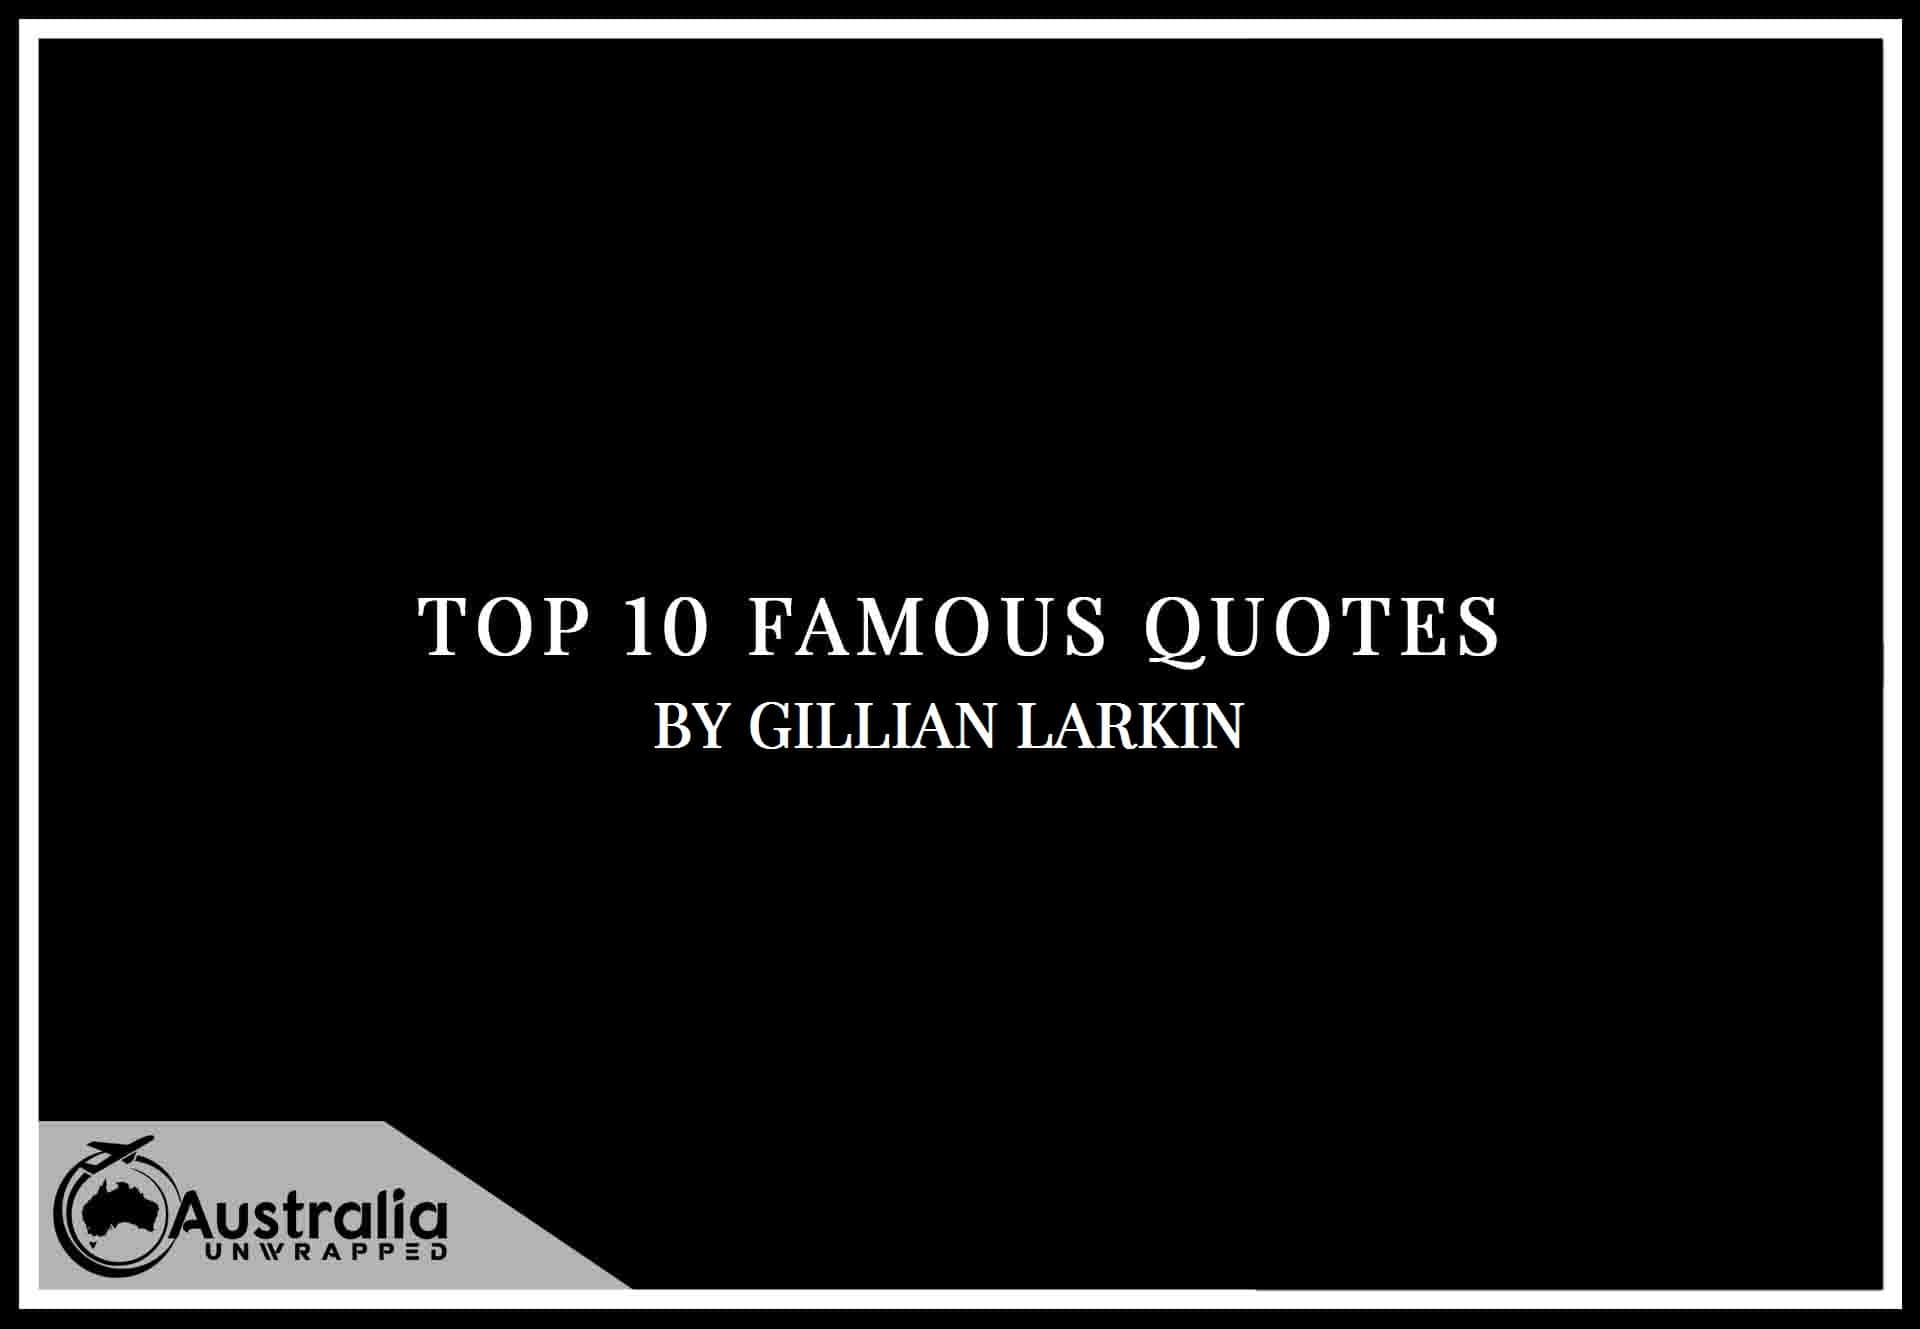 Gillian Larkin's Top 10 Popular and Famous Quotes